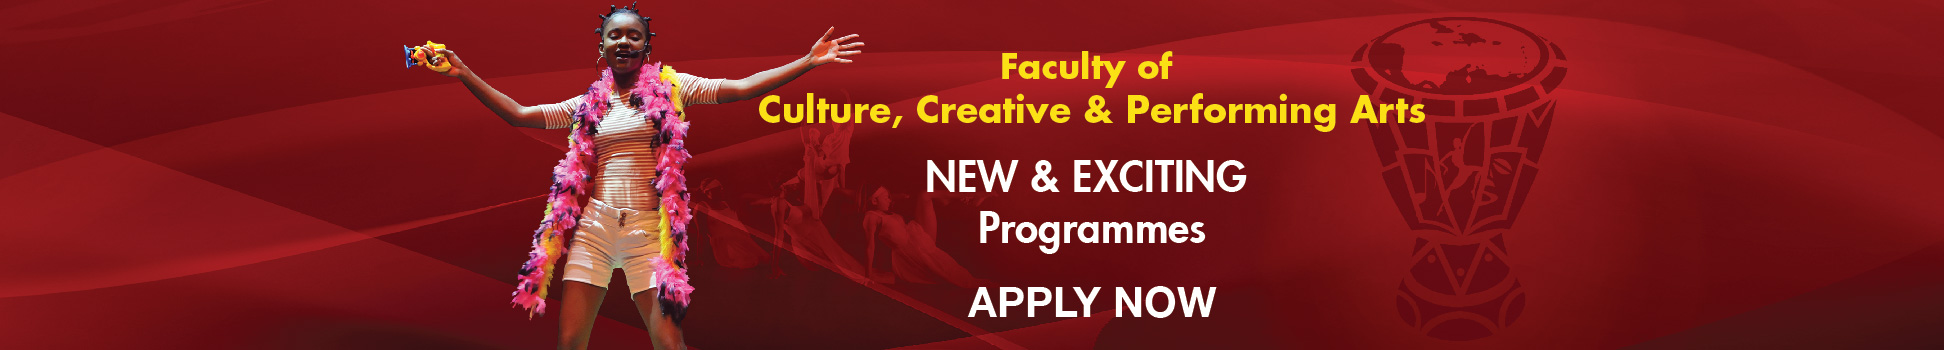 New Faculty of Culture, Creative & Performing Arts